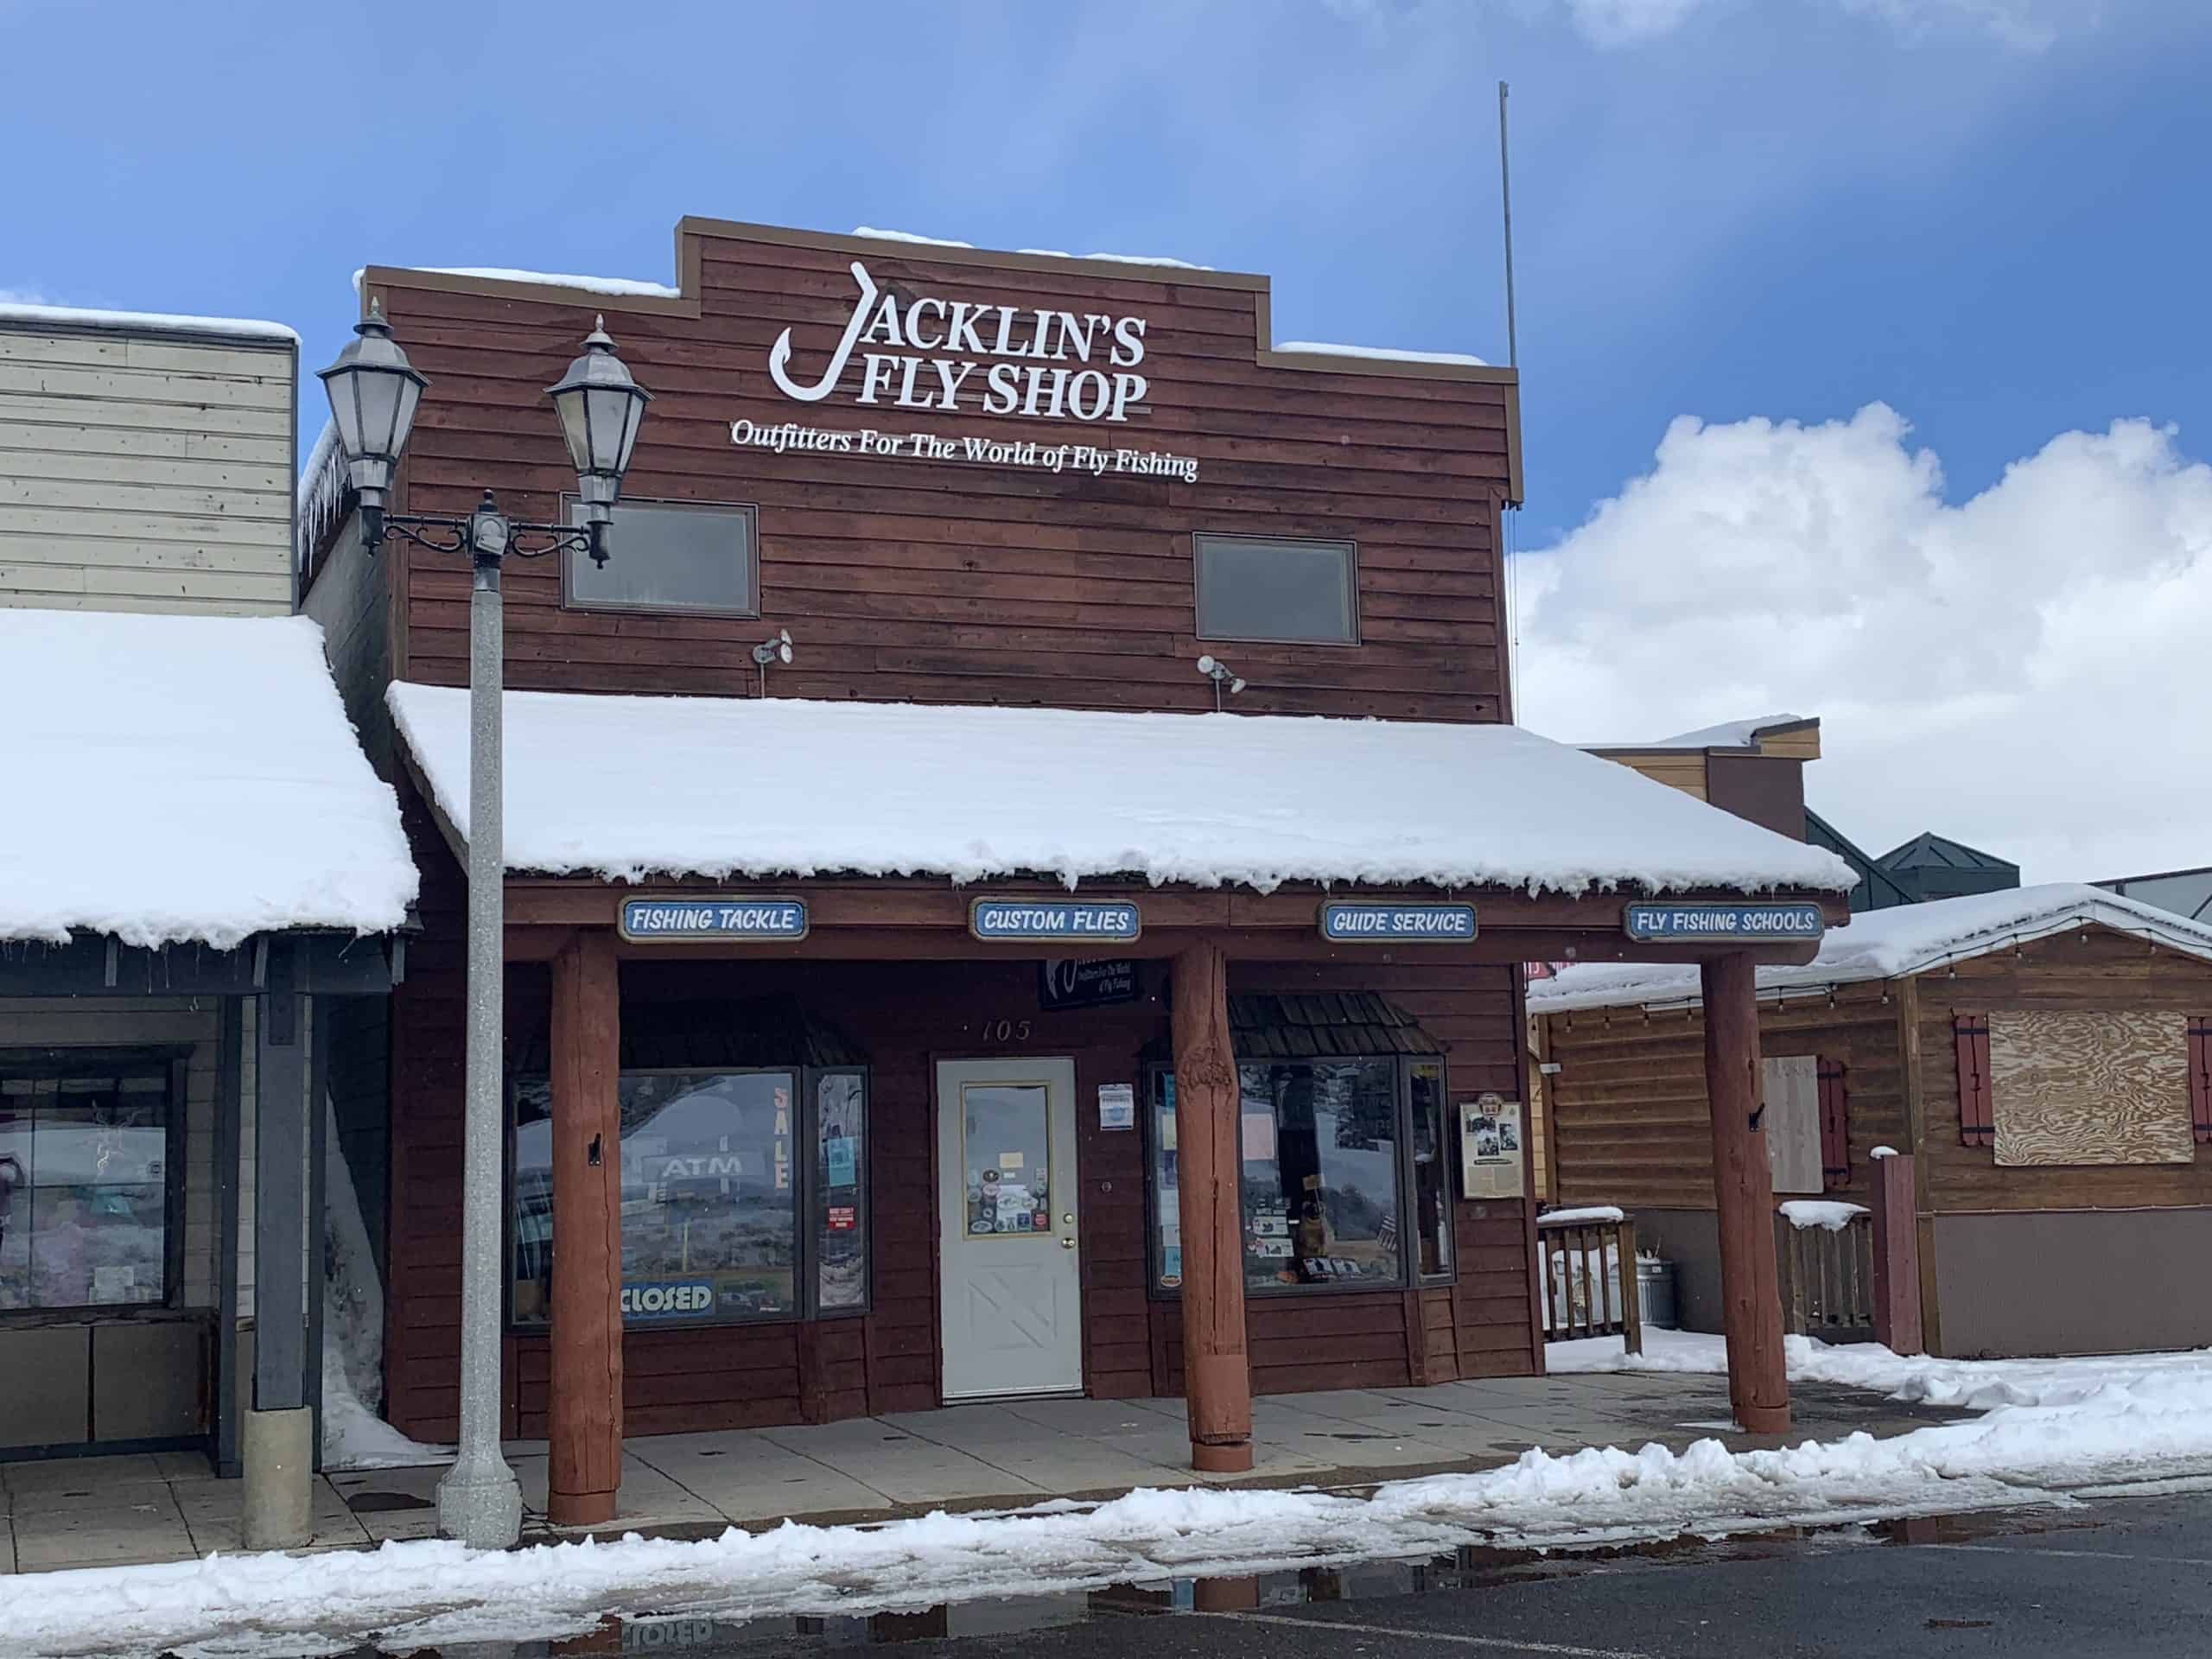 Jacklin's Fly Shop in West Yellowstone